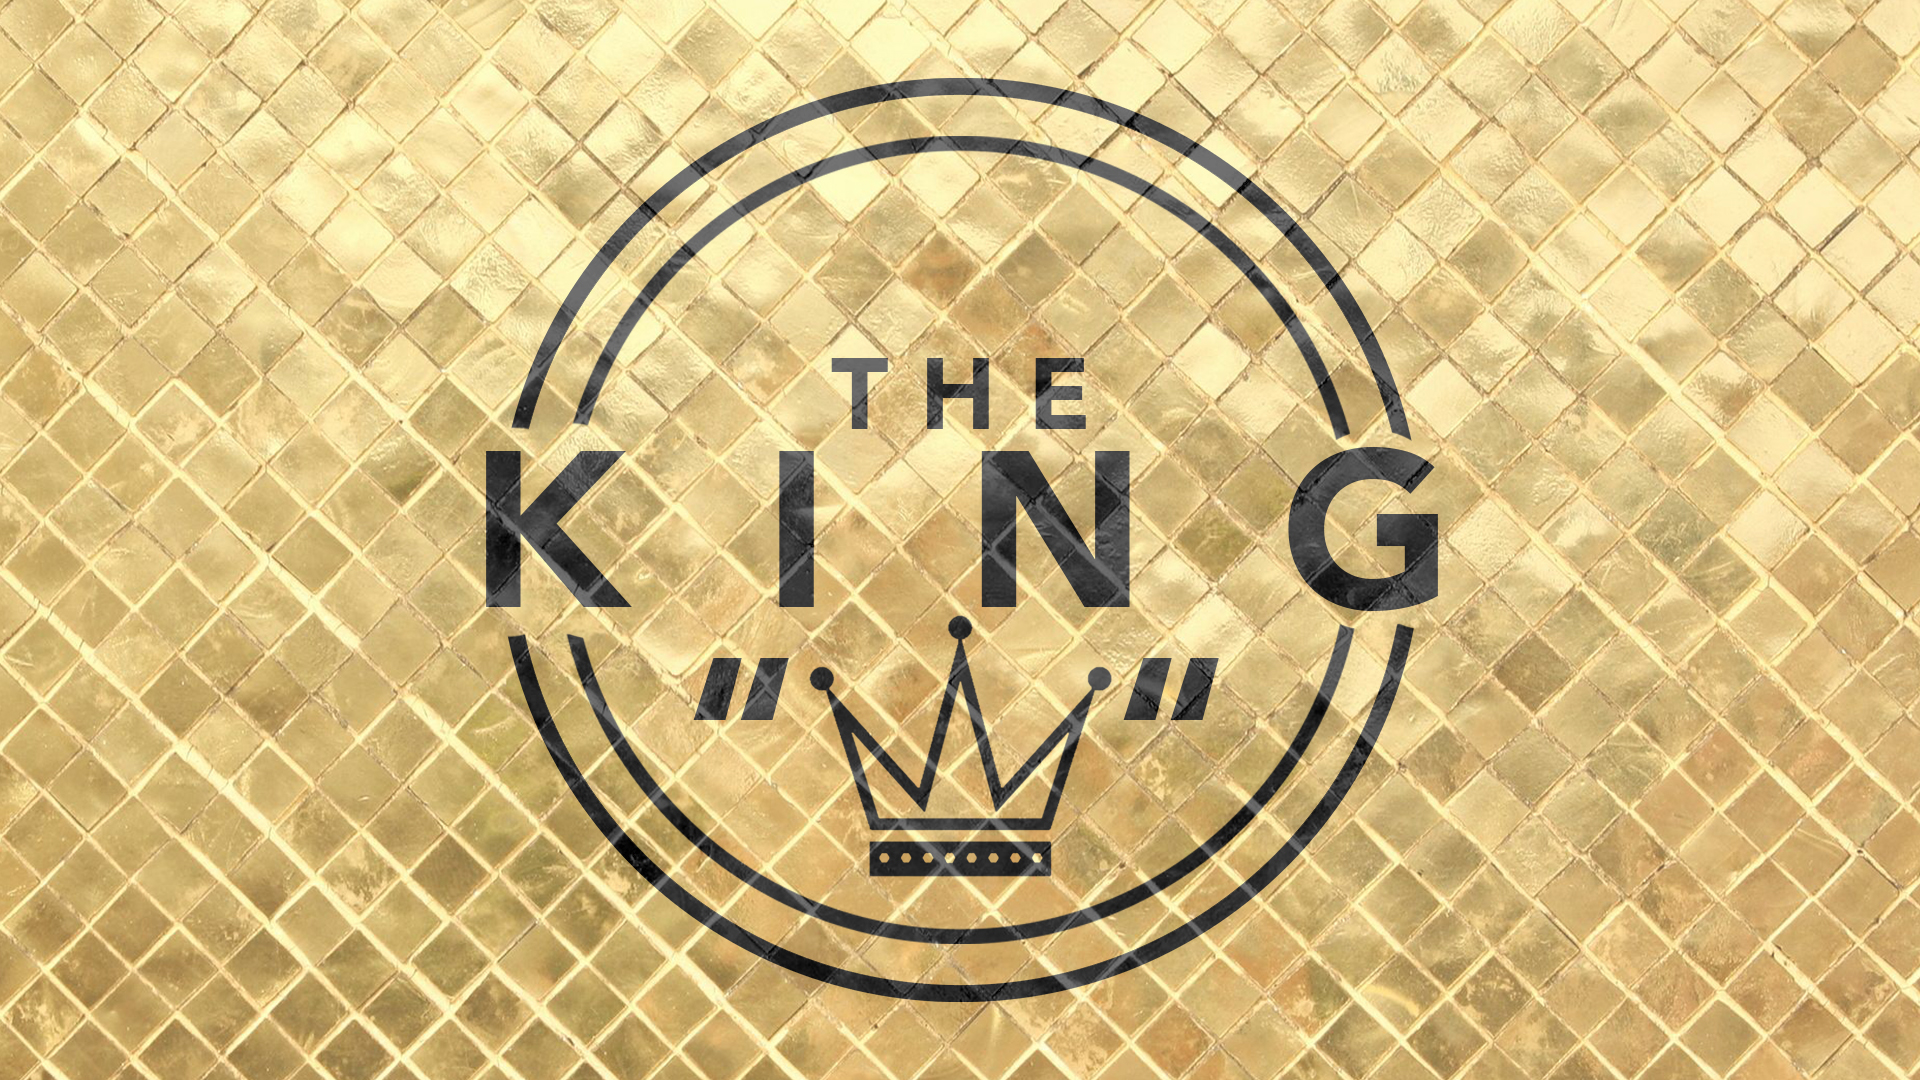 The king graphic